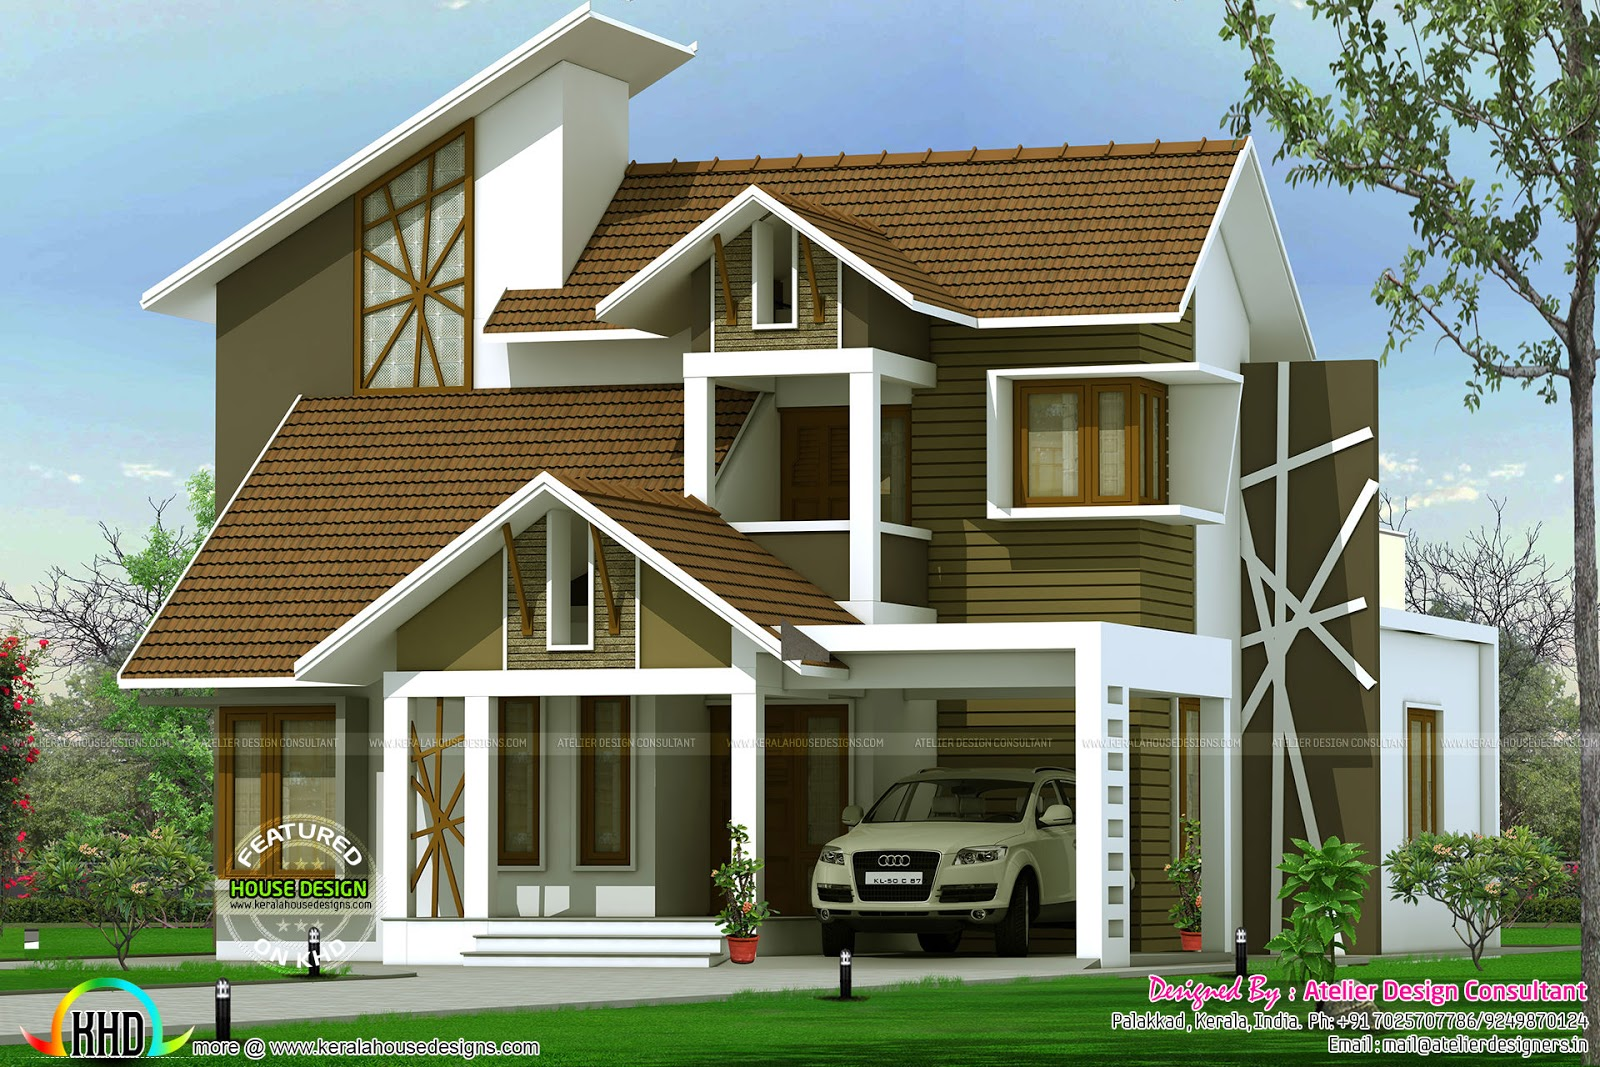 See floor plans read more please follow kerala home design - Design Style Modern Contemporary Floor Plan Available Yes Download Floor Plan And See Facilities Read More Please Follow Kerala Home Design